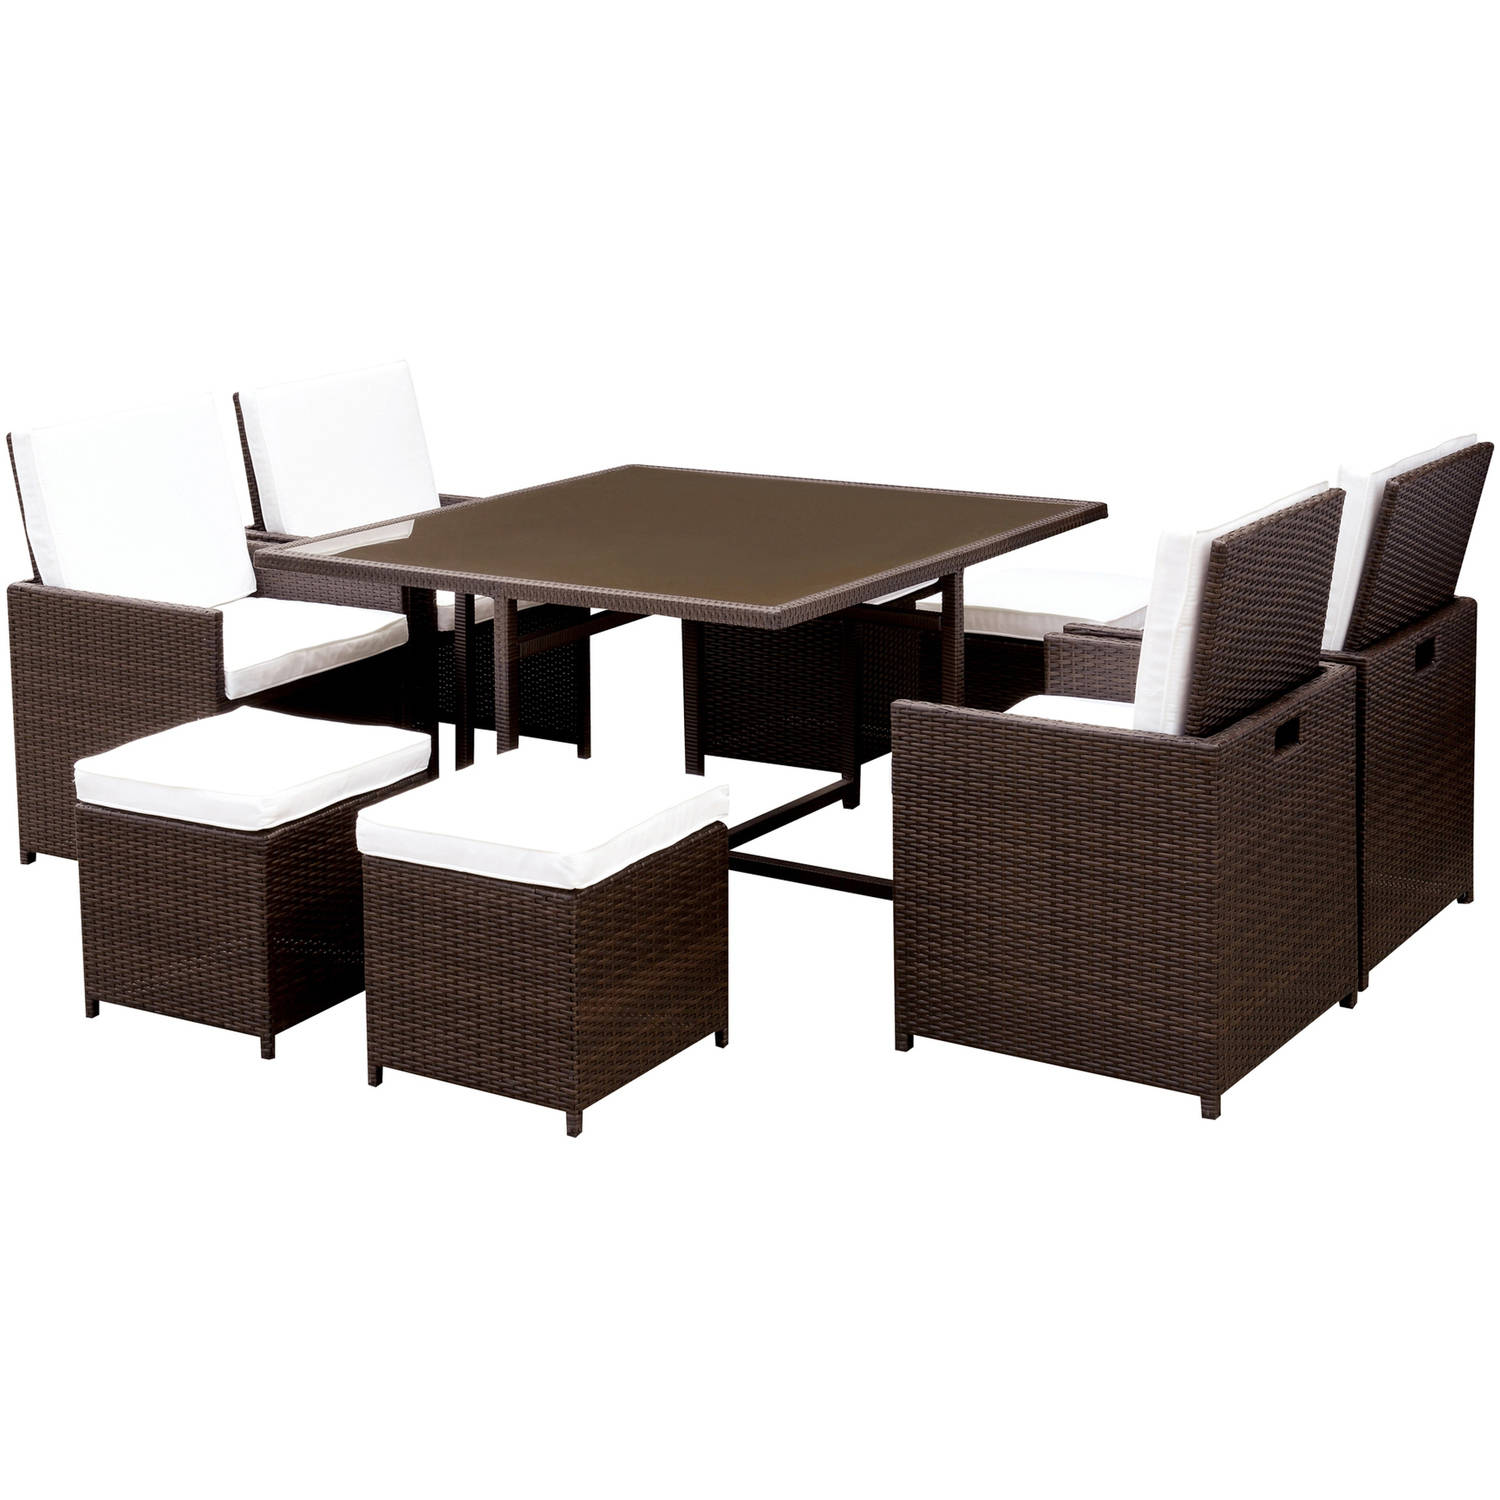 Furniture of America Meka 9-Piece Patio Dining Room Set, White and Espresso by Furniture of America